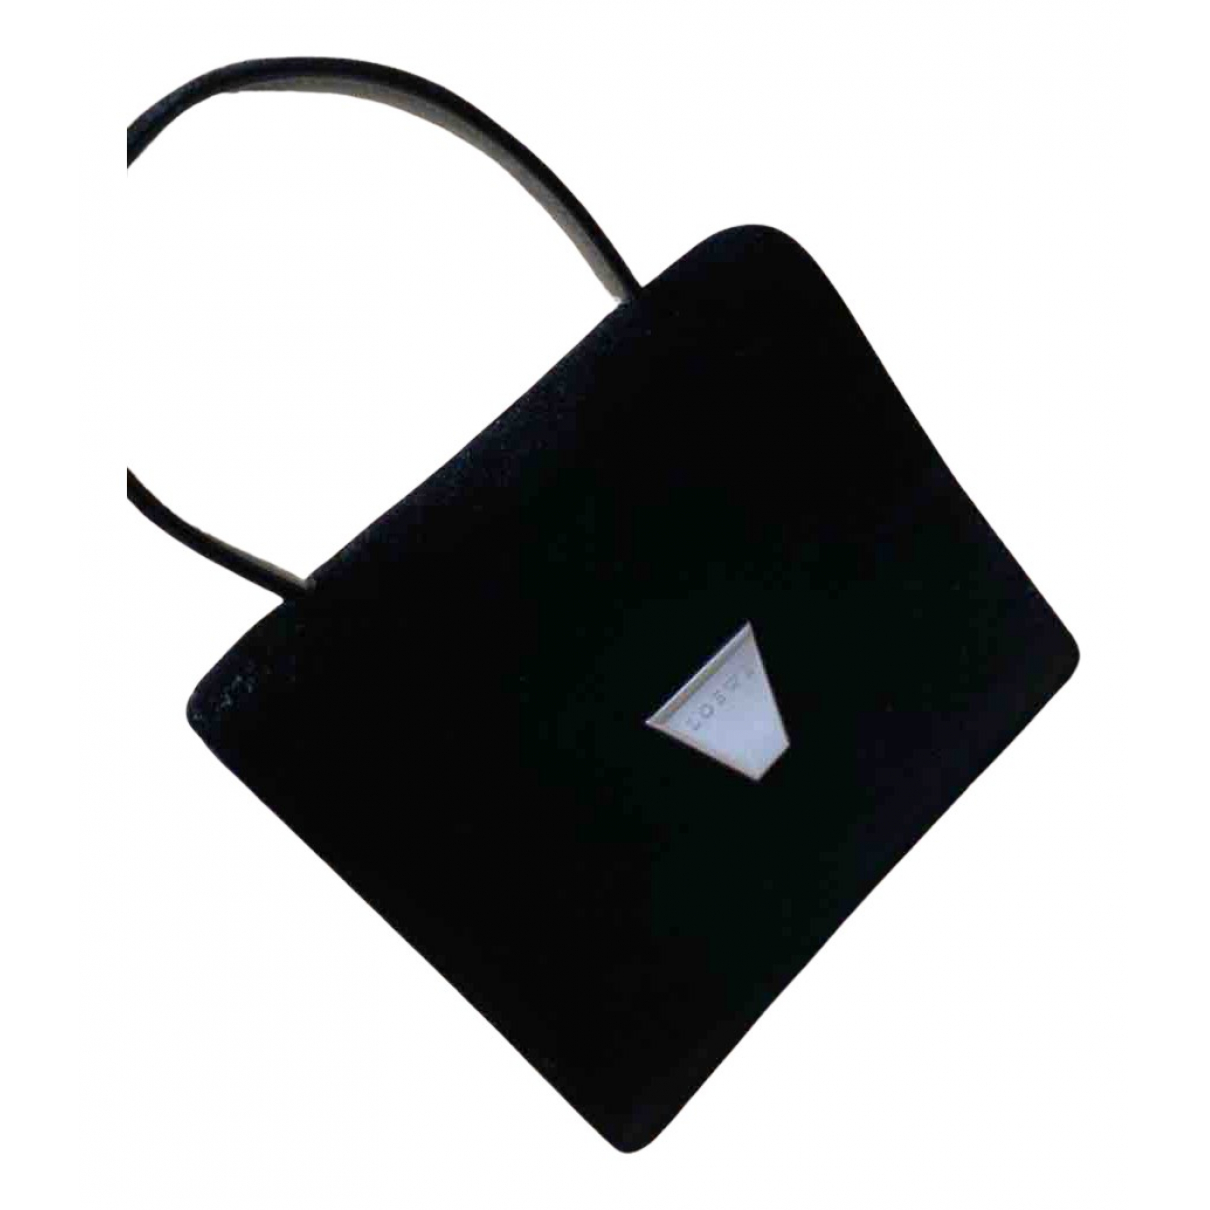 Loewe N Black Suede Clutch bag for Women N